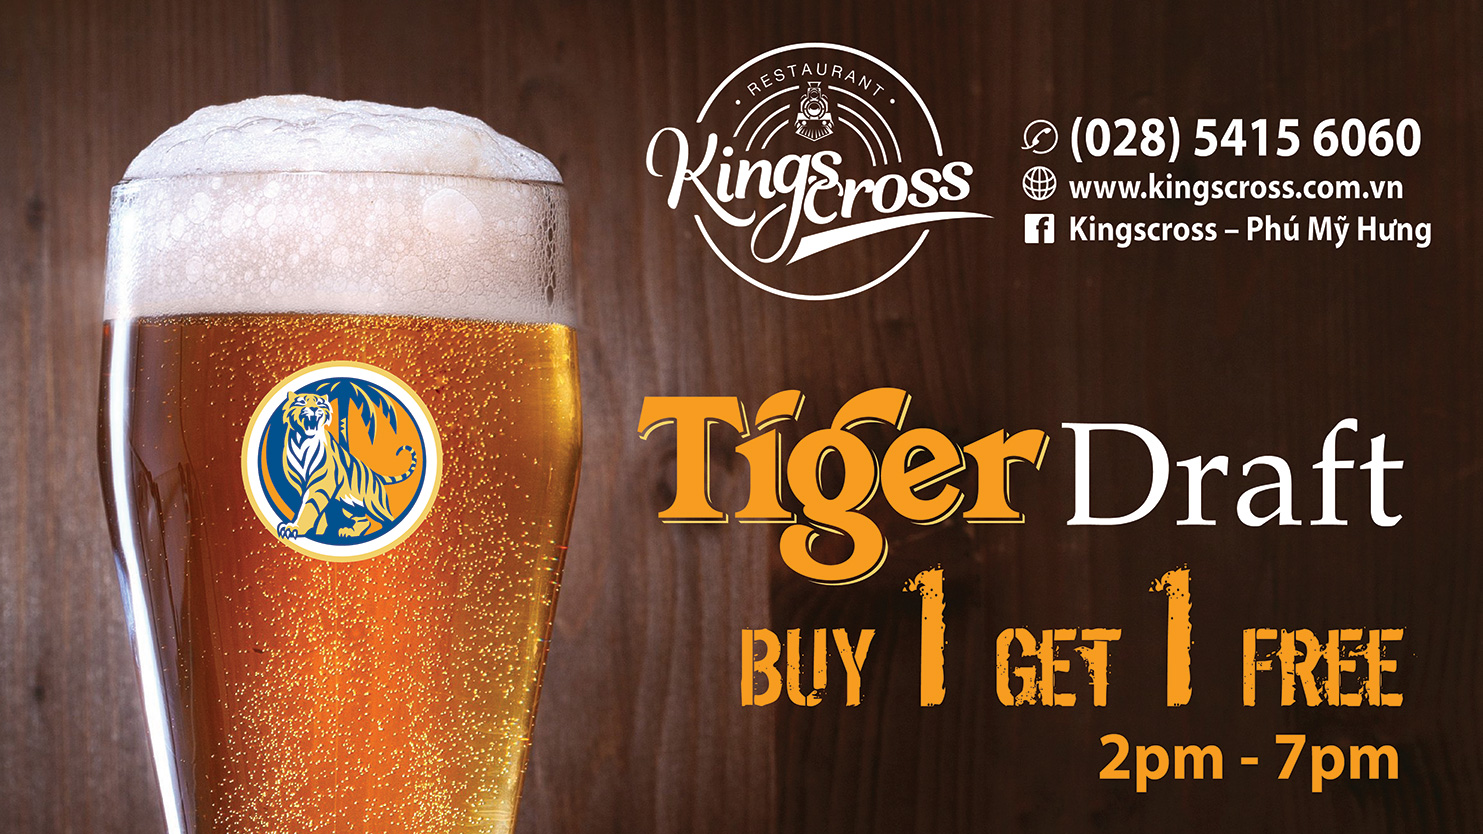 kingscross beer offer